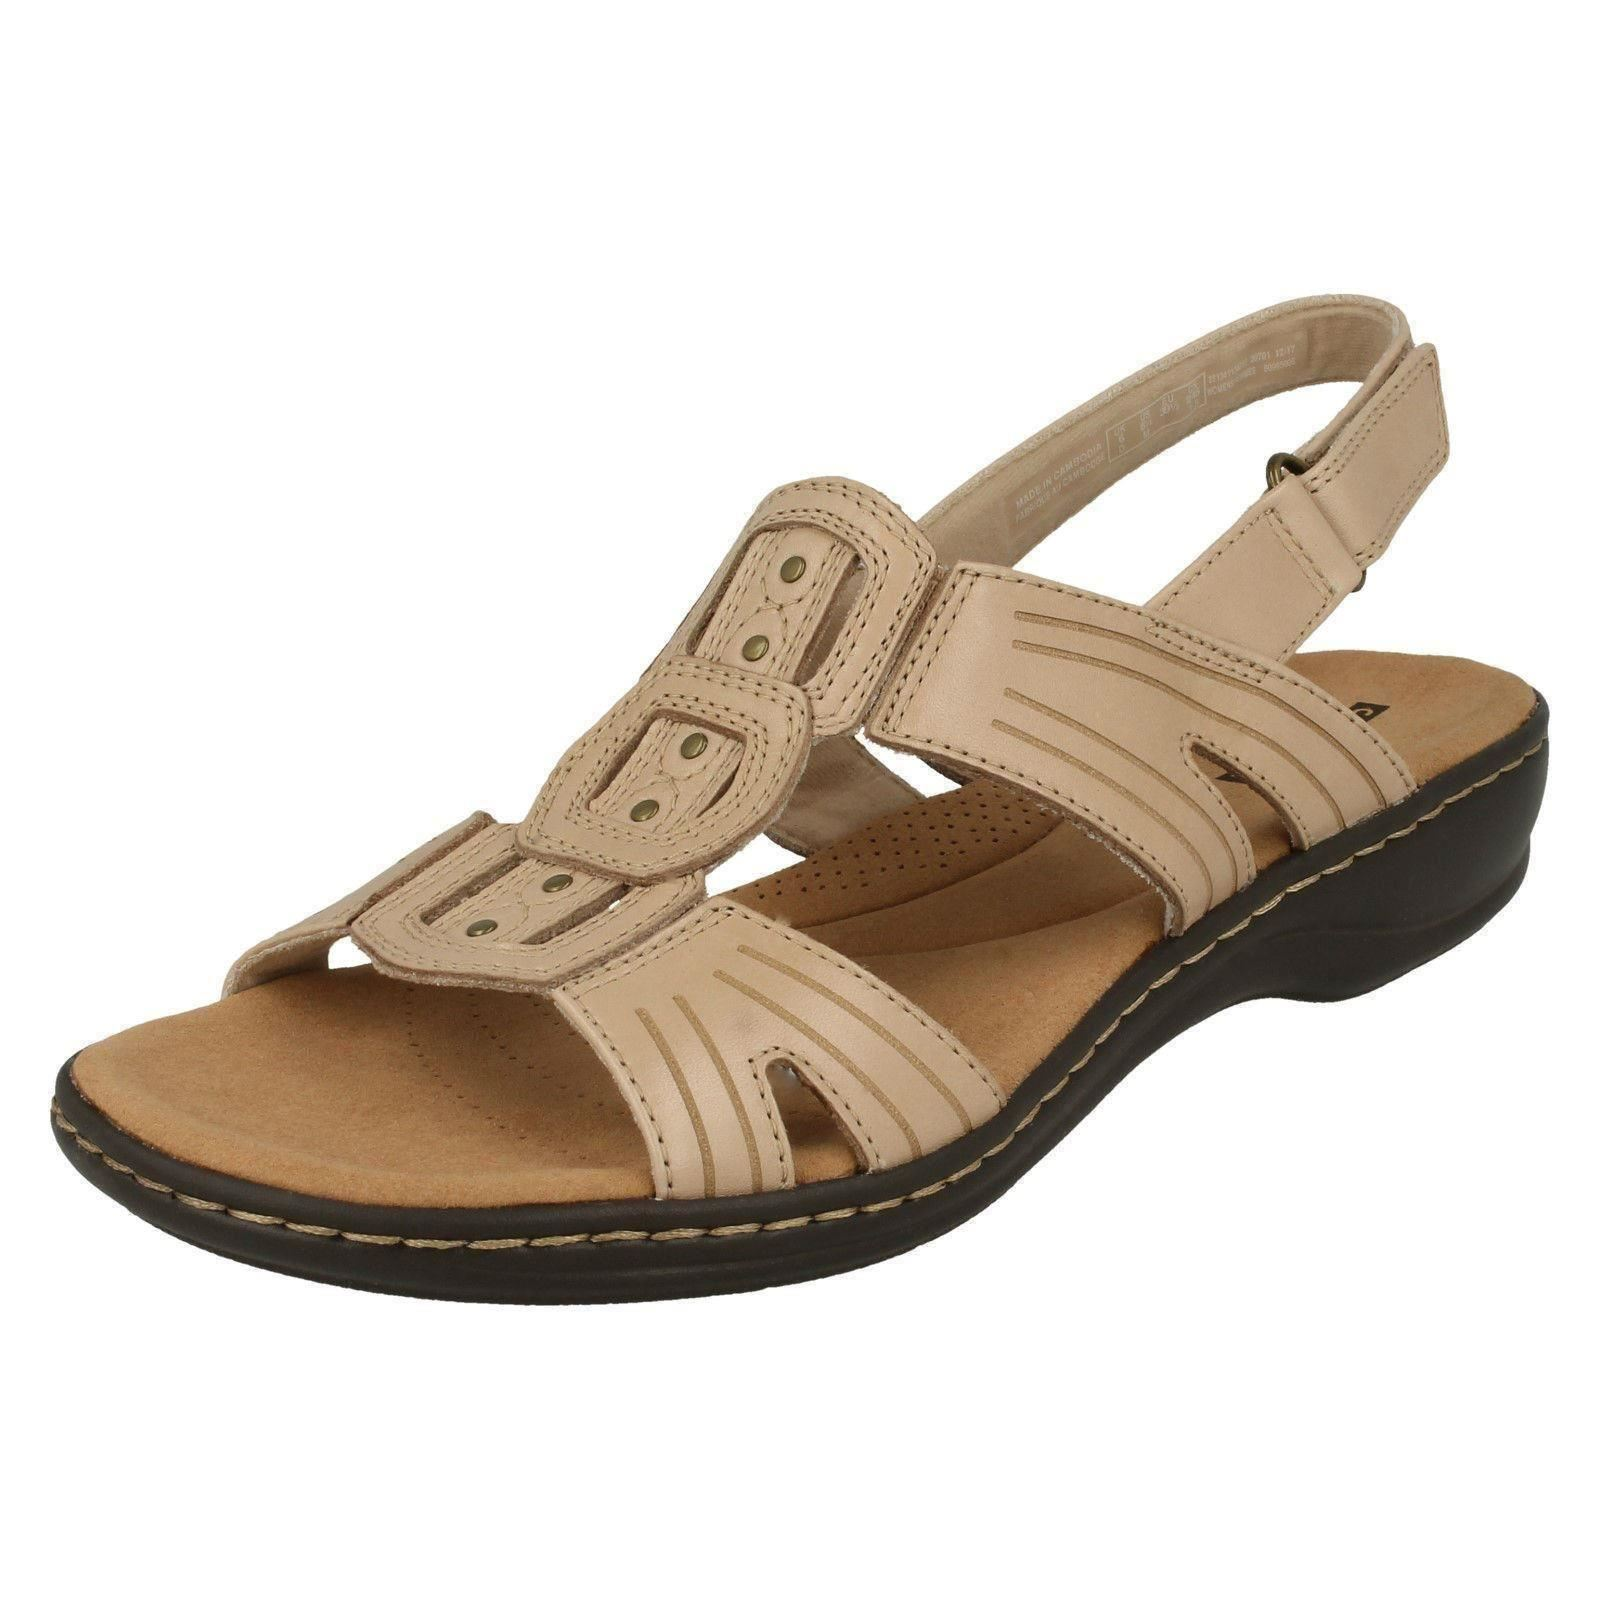 b22833c1639 Ladies Clarks Leisa Vine Strappy Sandals Sand (beige) UK 6 D. About this  product. Picture 1 of 7  Picture 2 of 7 ...